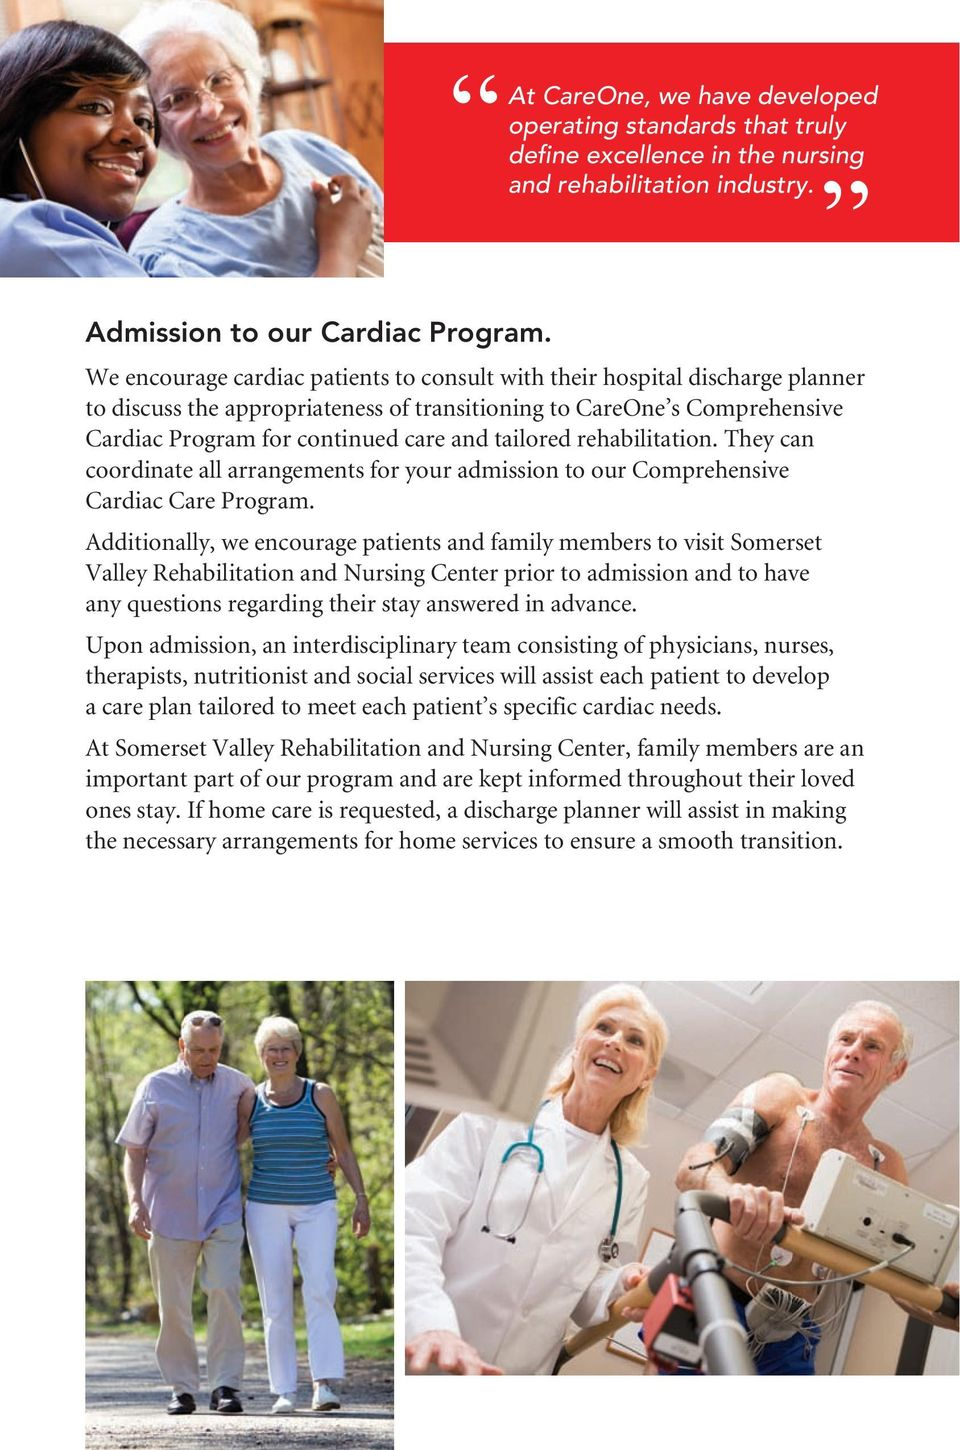 tailored rehabilitation. They can coordinate all arrangements for your admission to our Comprehensive Cardiac Care Program.